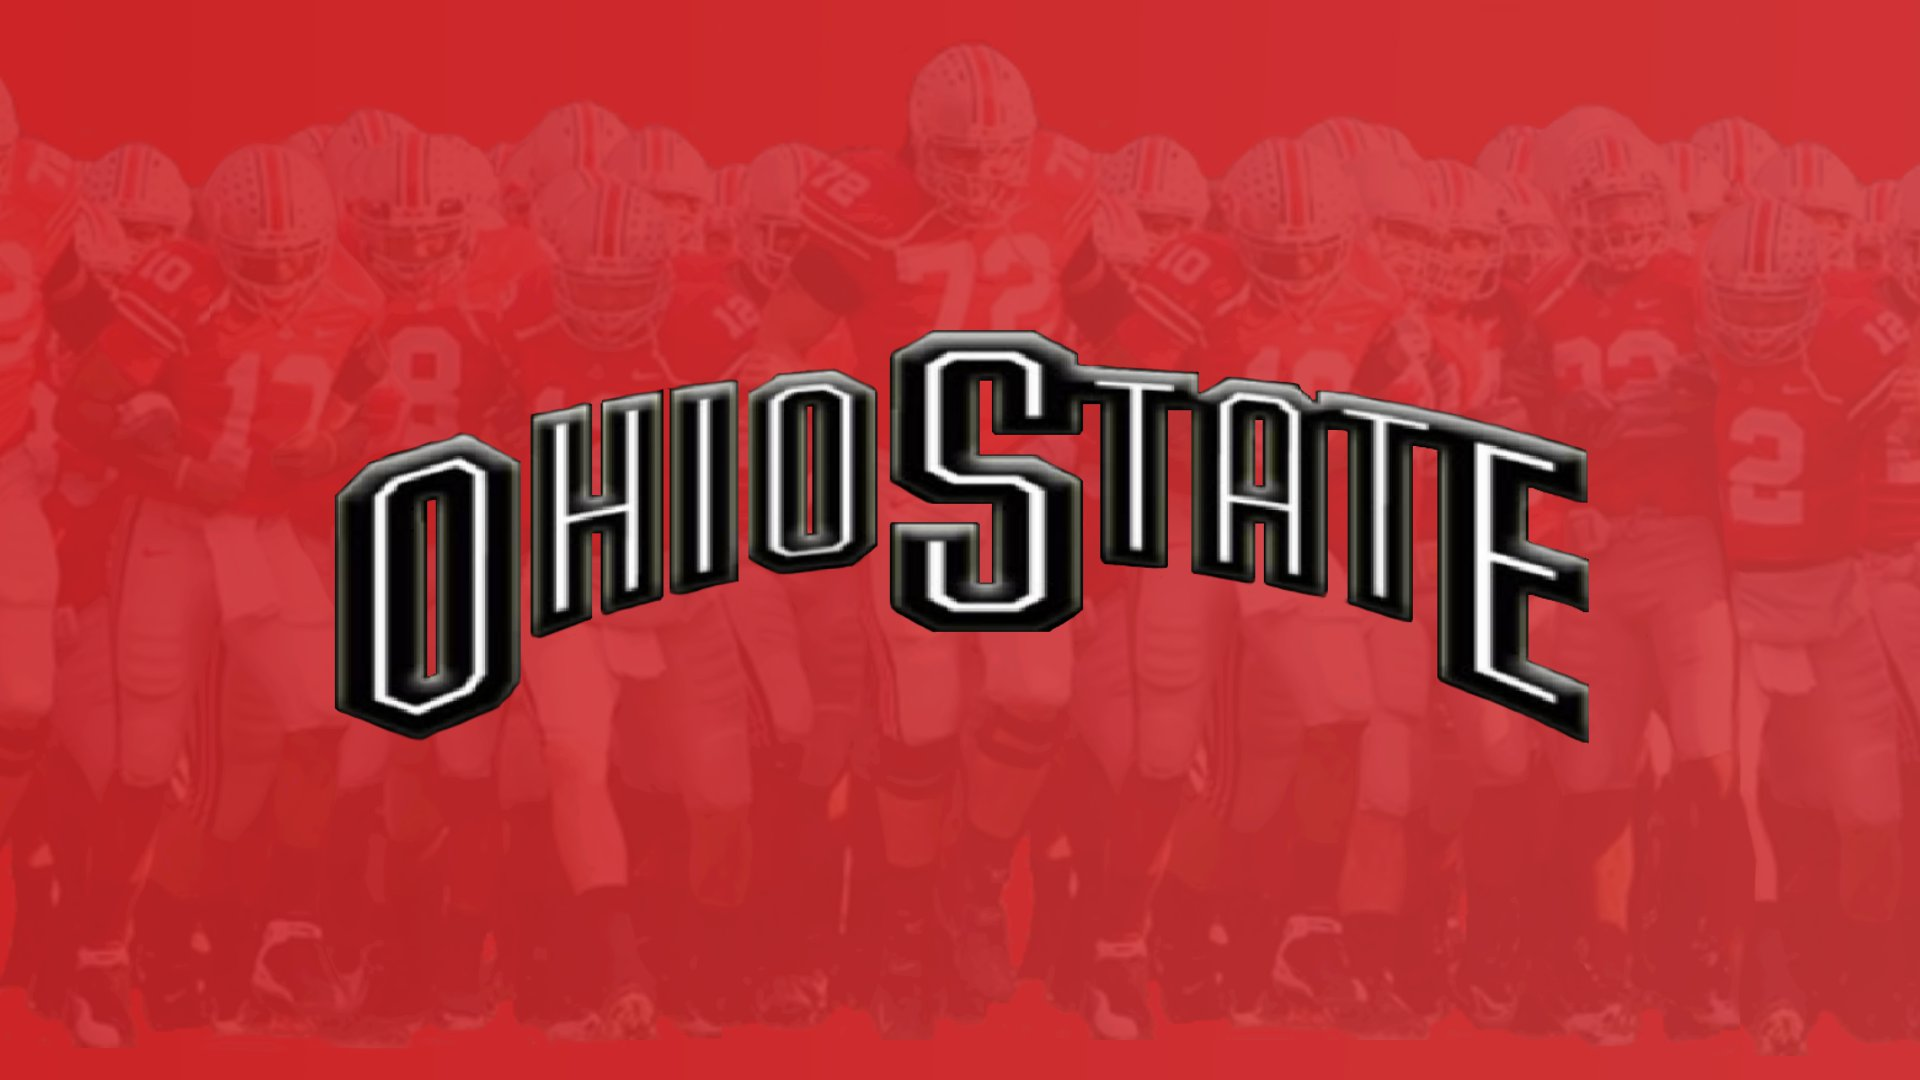 OSU Wallpaper 138   Ohio State Football Wallpaper 28715800 1920x1080